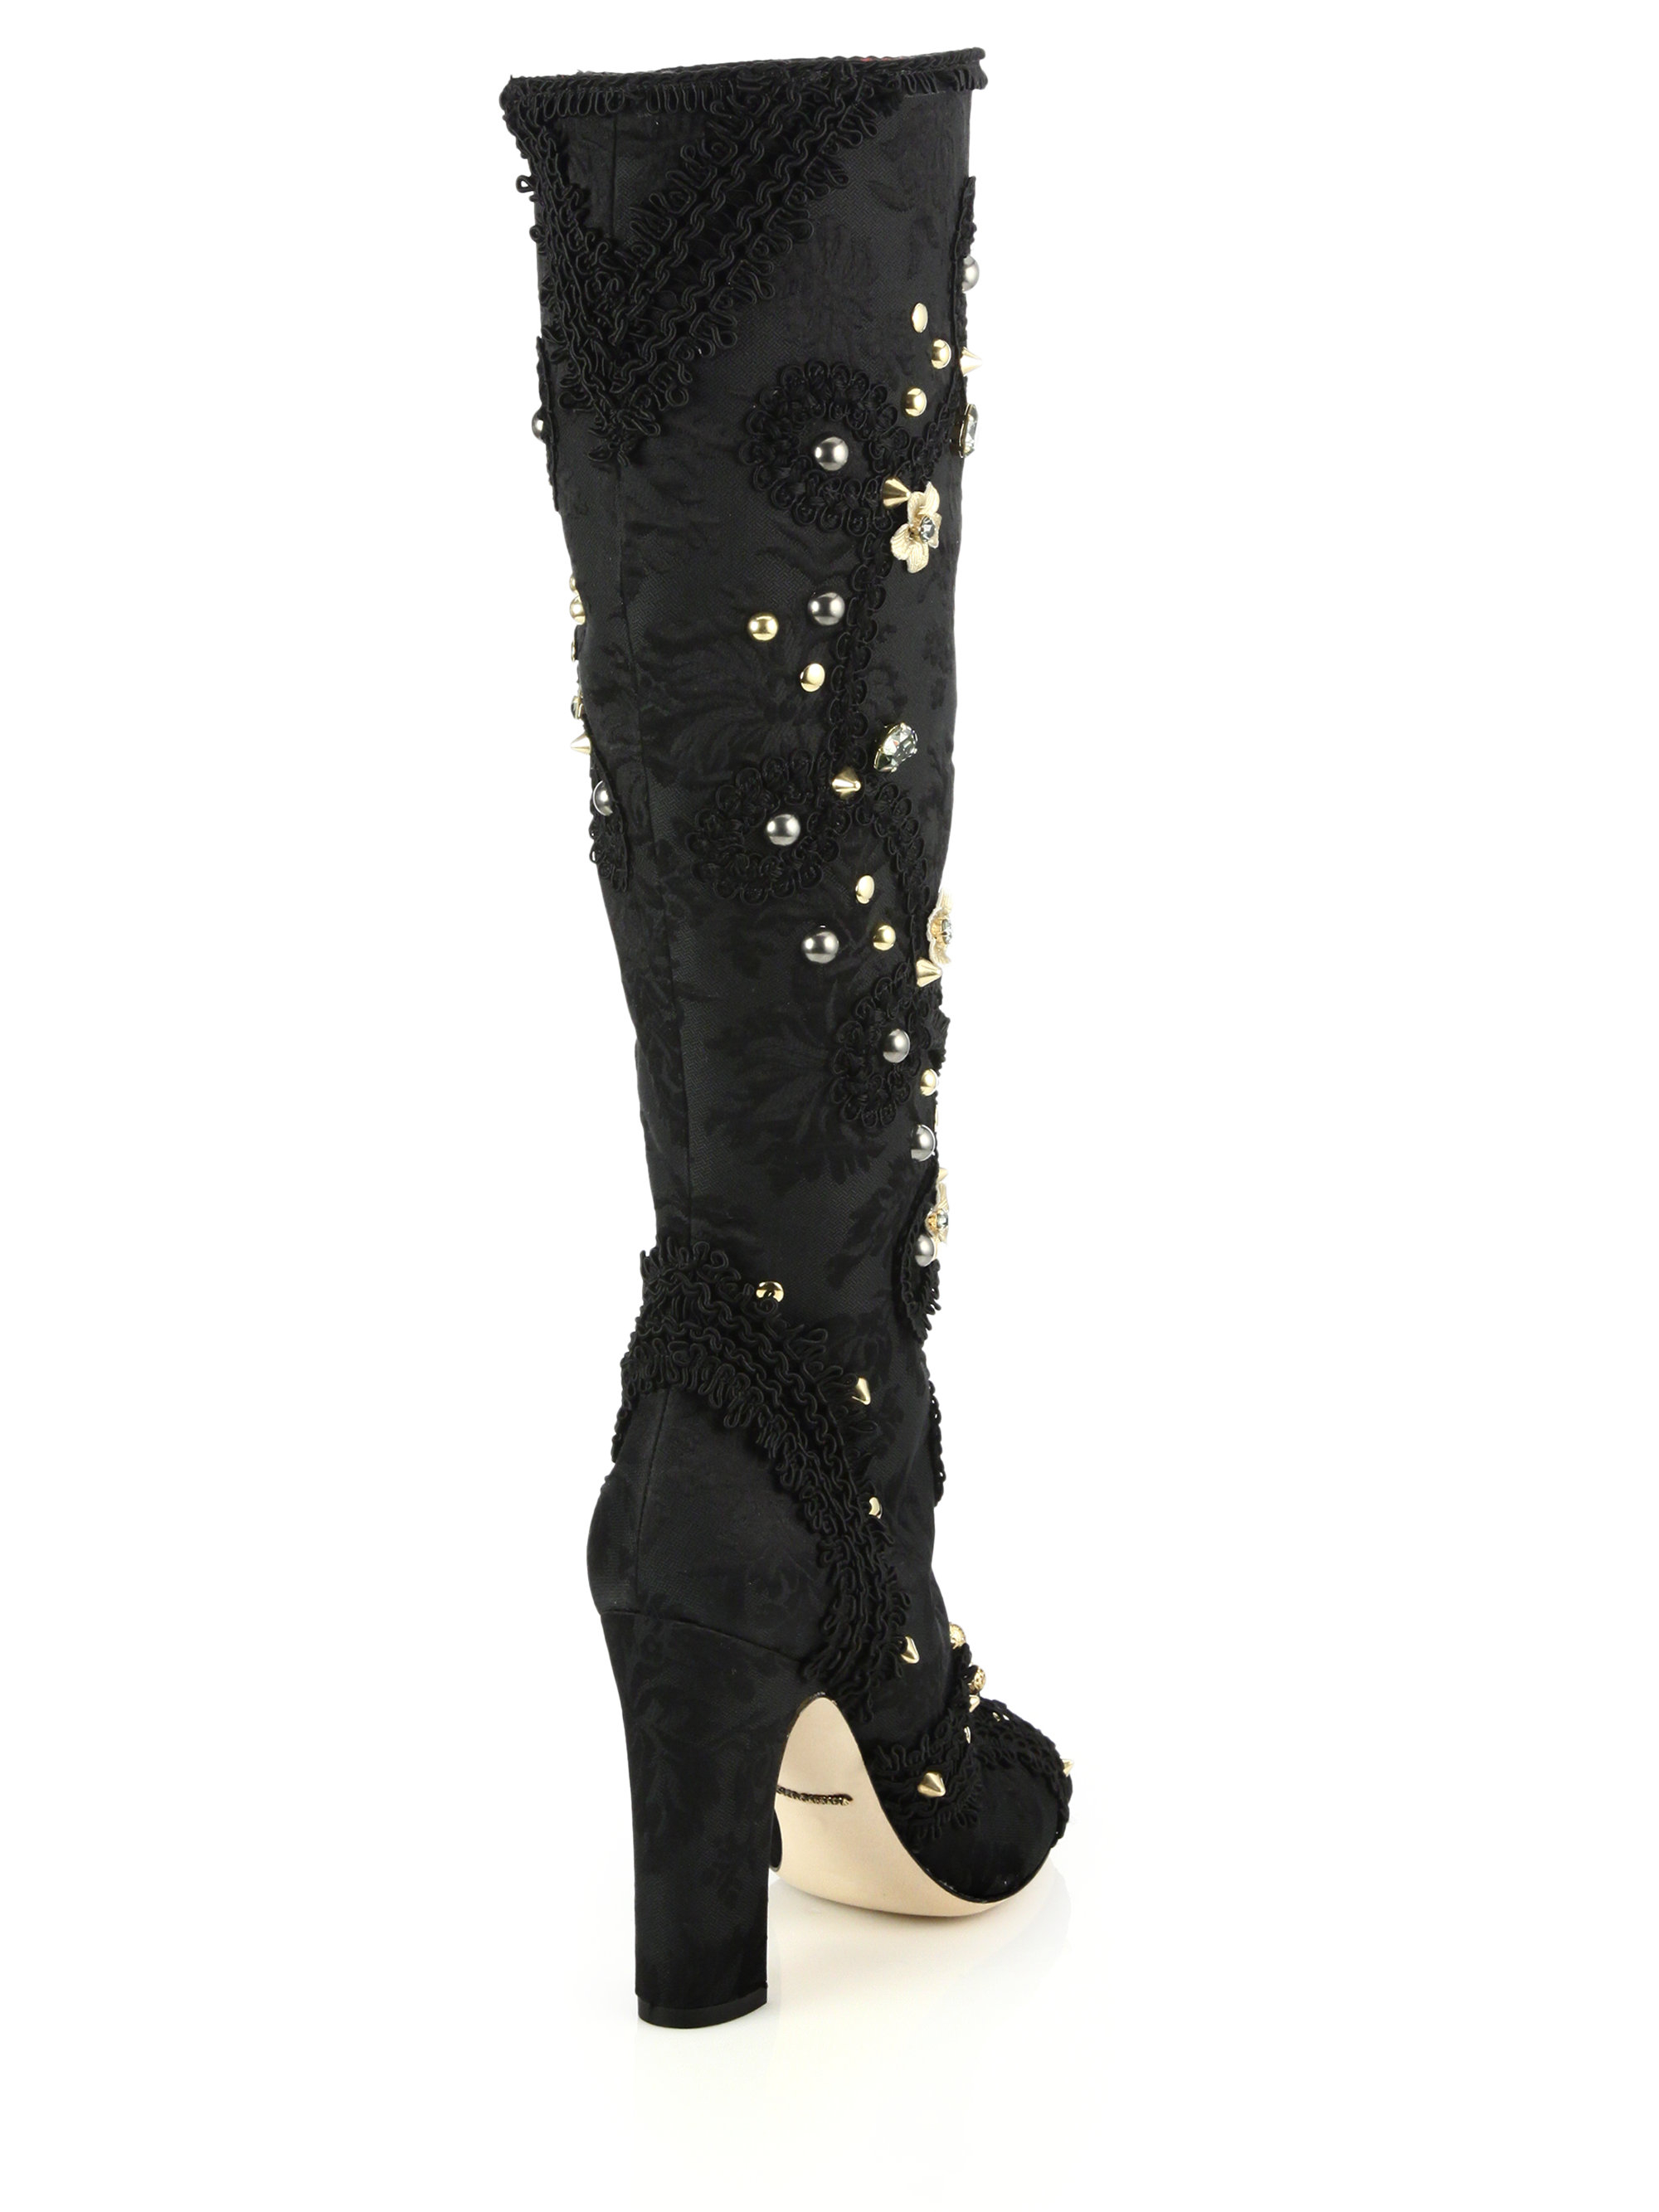 Dolce & gabbana Jeweled & Studded Satin Knee-High Boots in Black ...